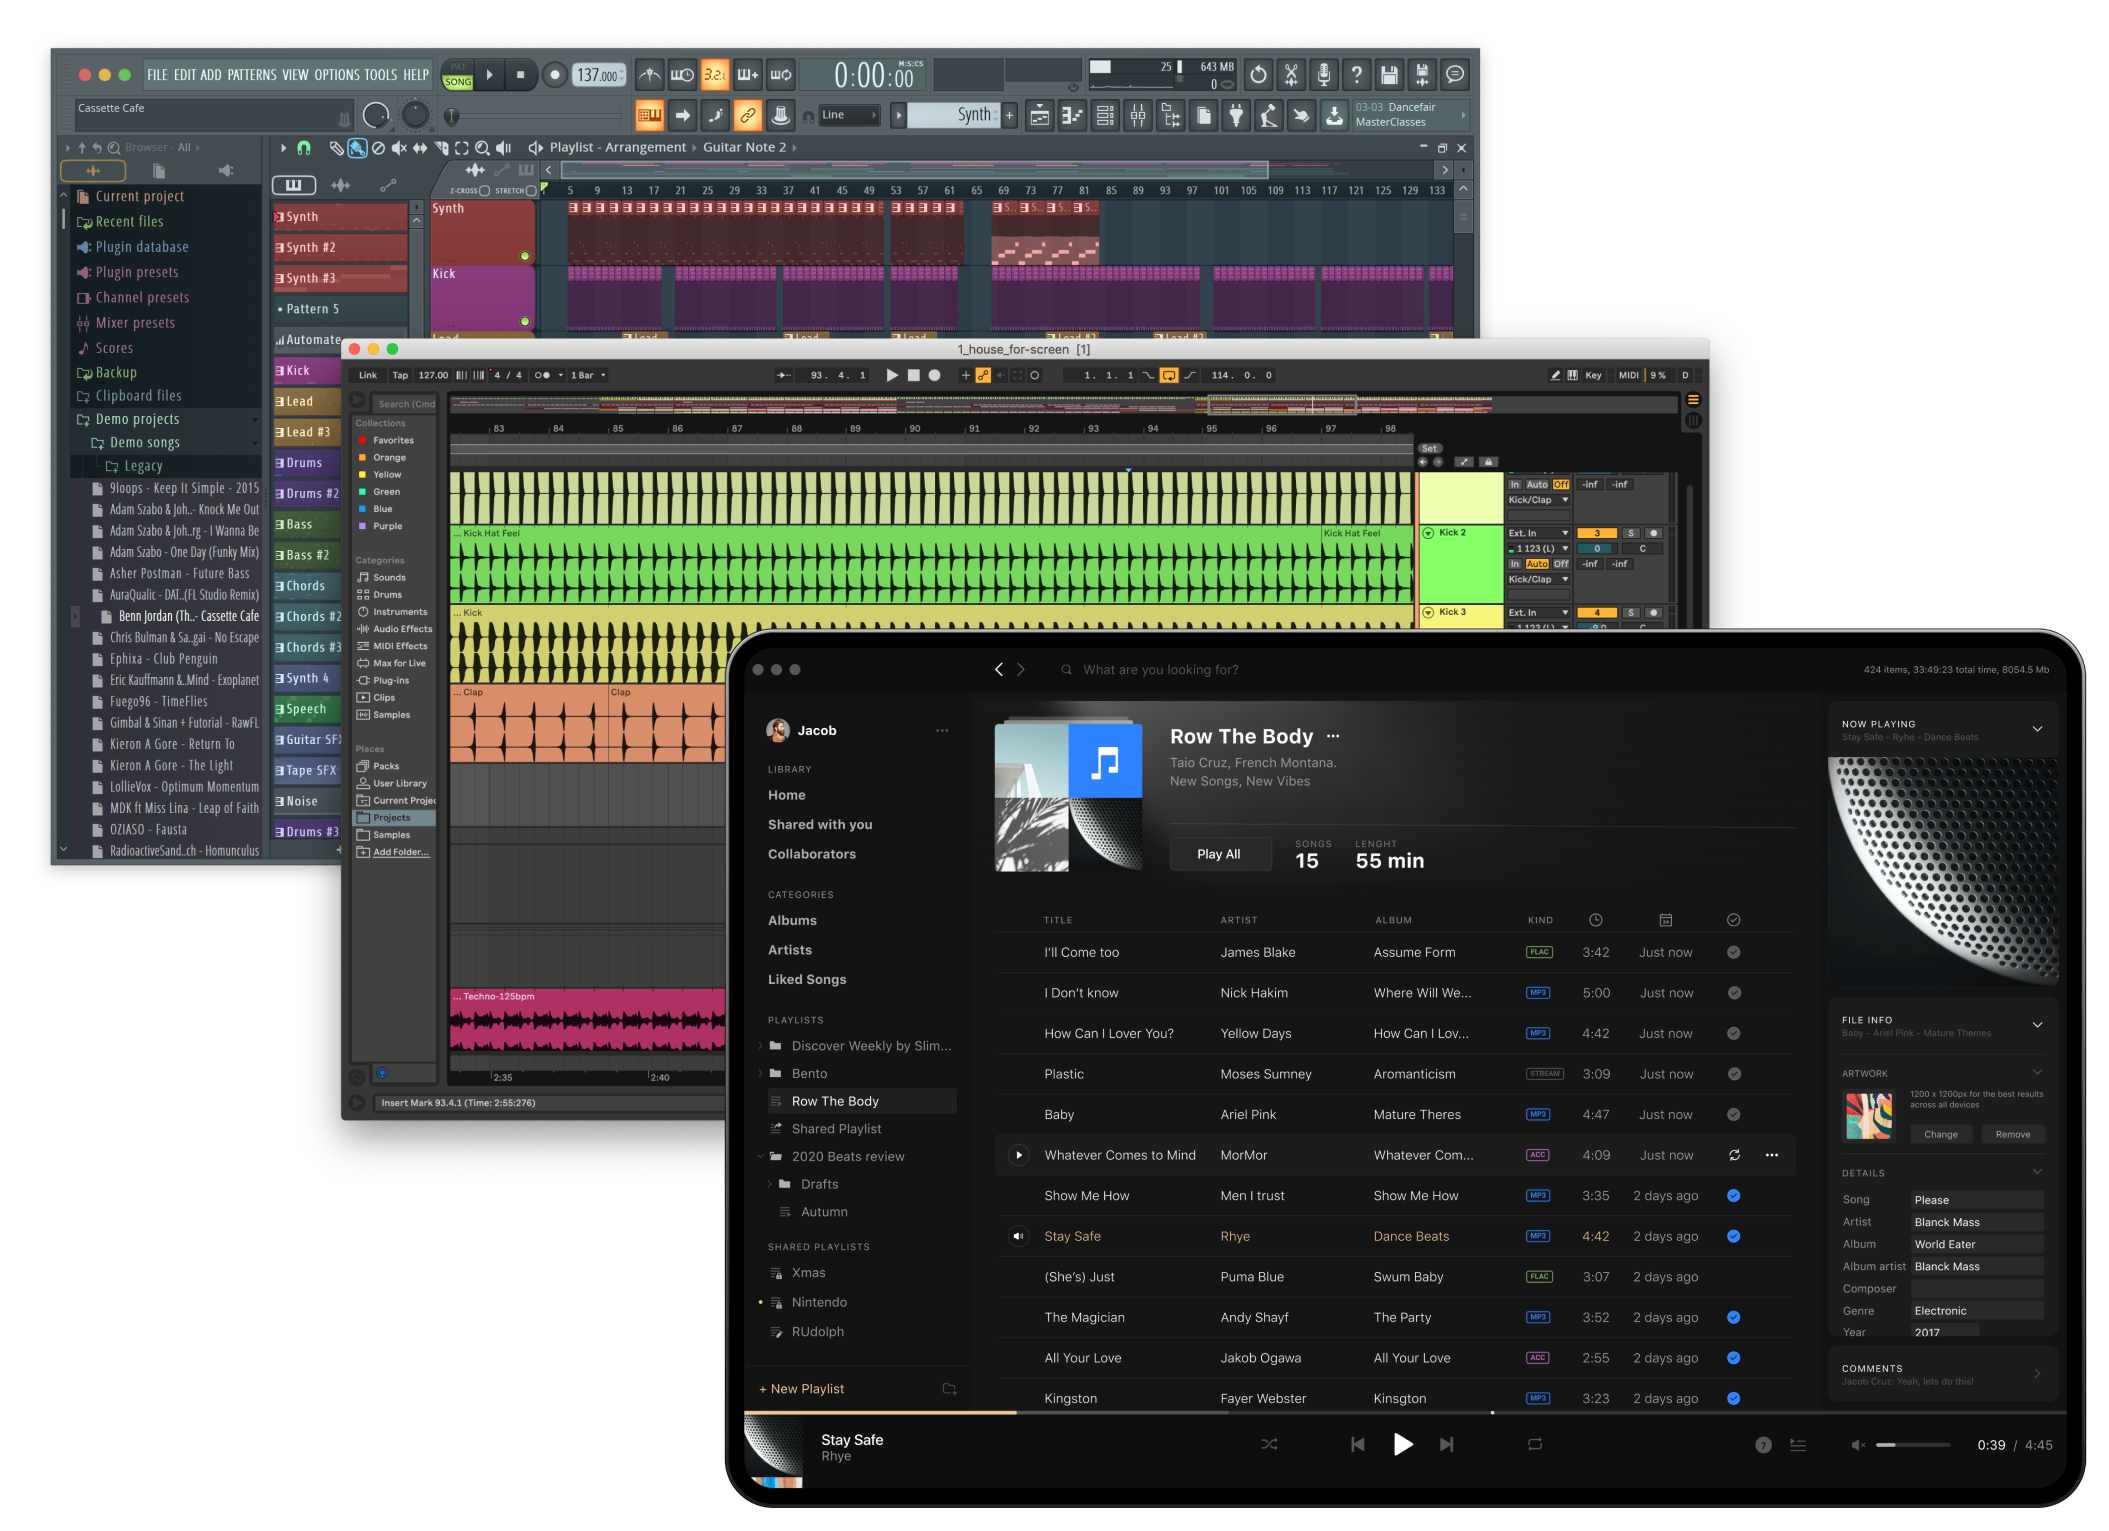 Drag and drop between Vollume Control and DAW's